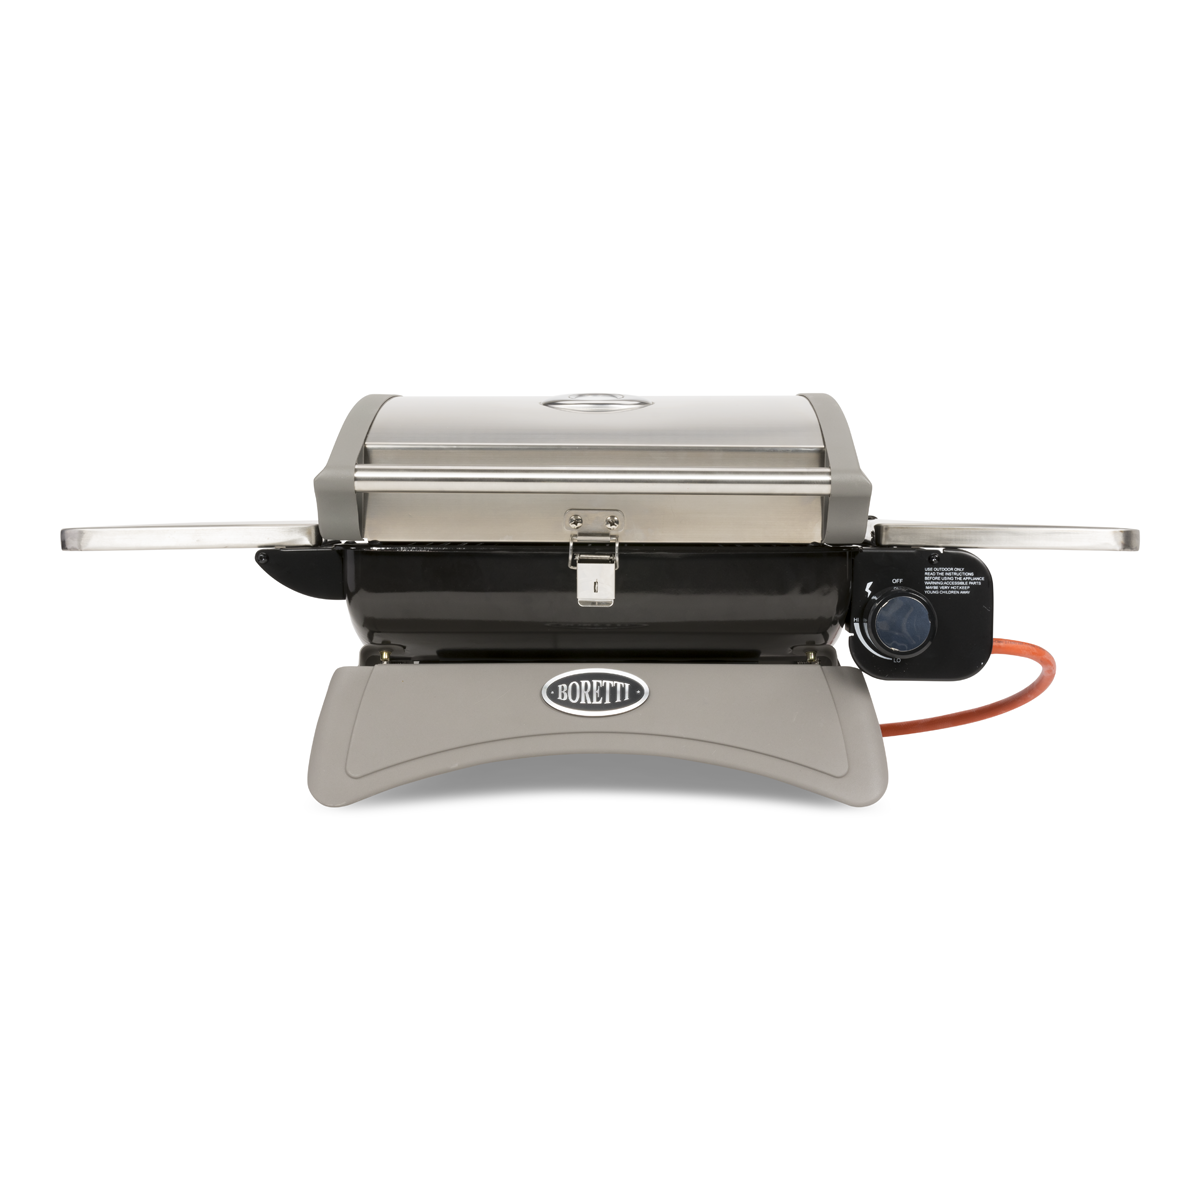 Boretti Piccolino kopen? Lees hier over het voordeligste Huis & Tuin > Alle barbecues > Portable barbecue